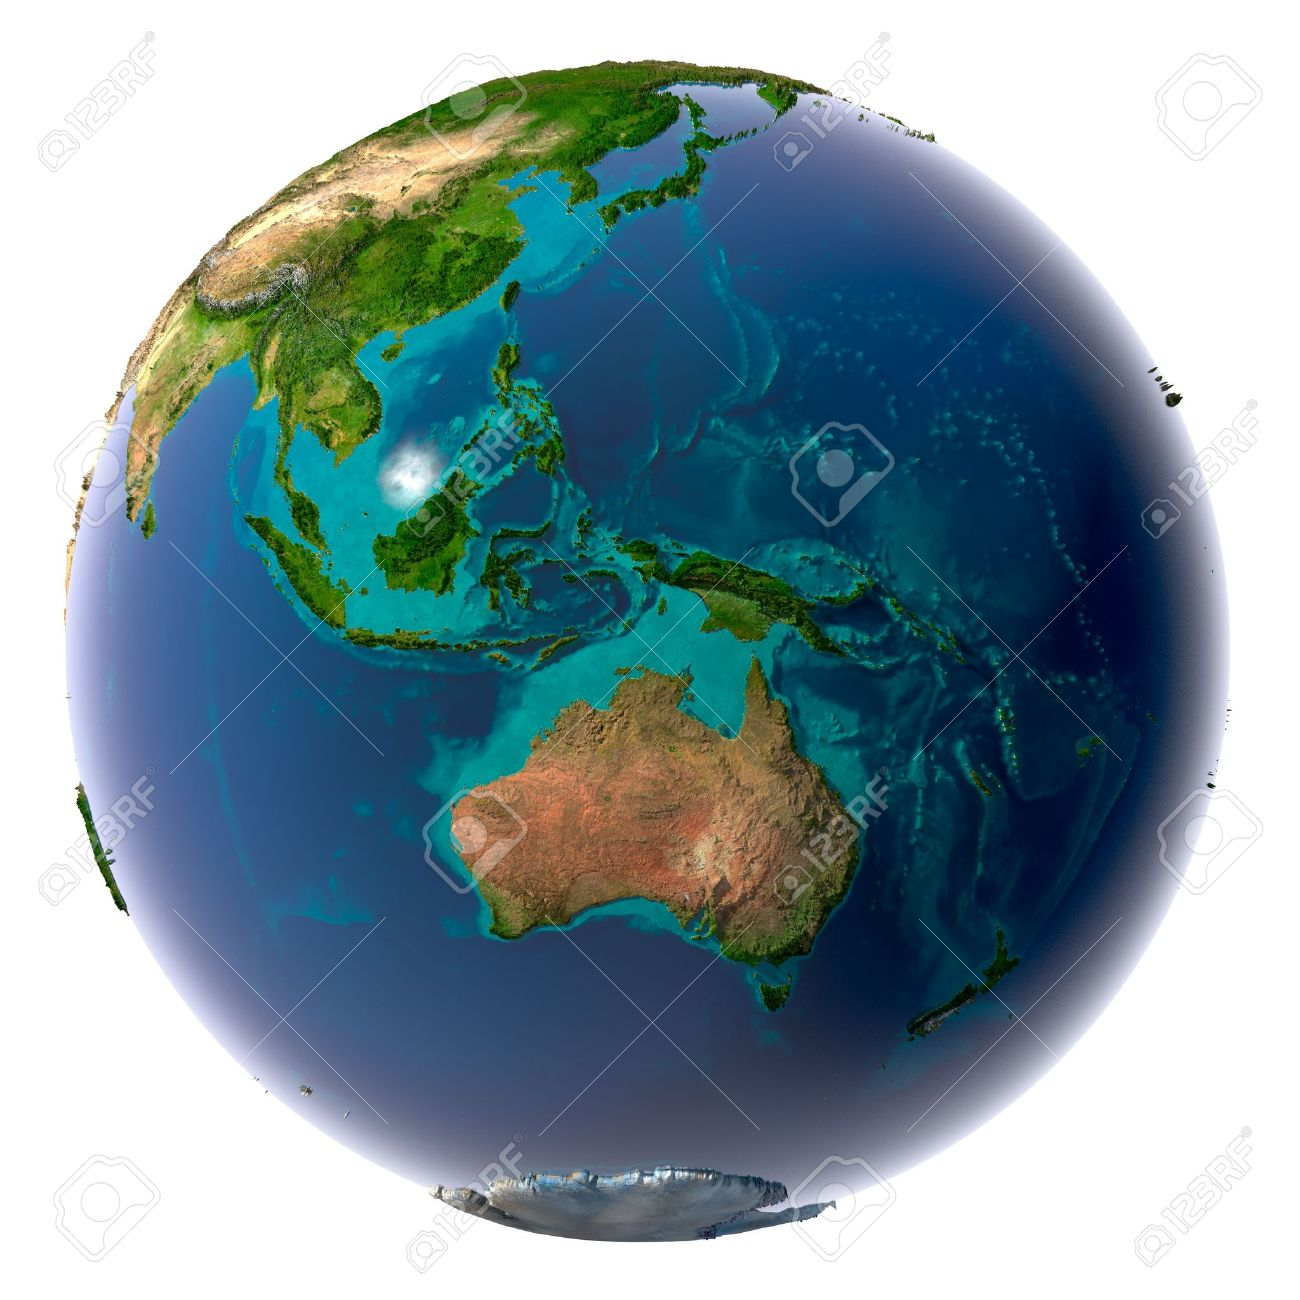 Earth with translucent water in the oceans and the detailed topography of the continents Stock Photo - 8057339